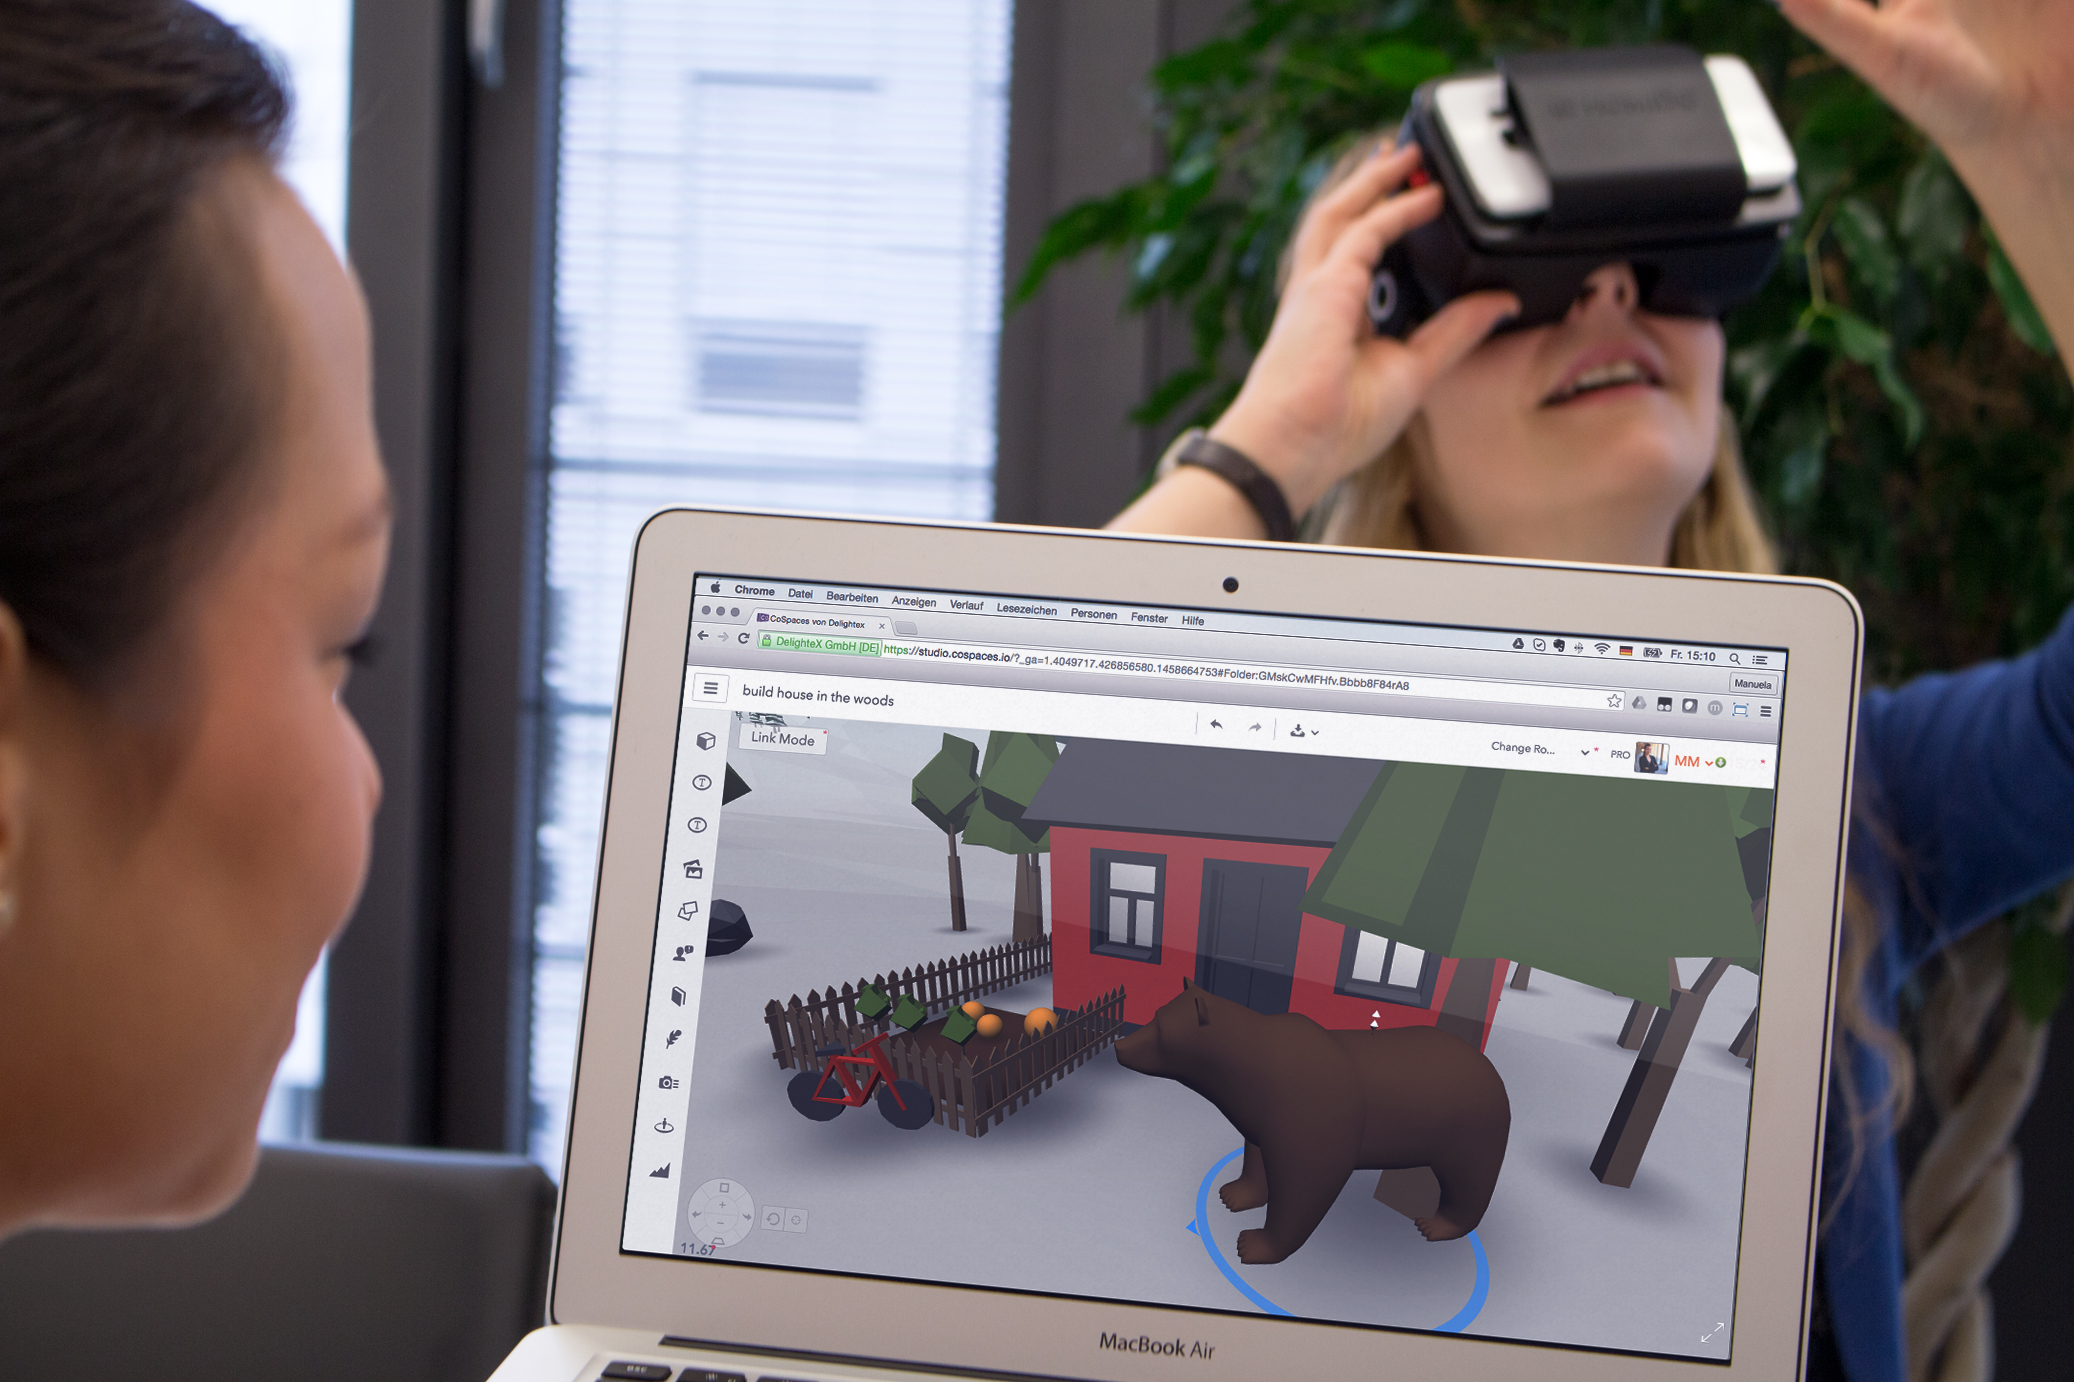 cospaces vr creation tool